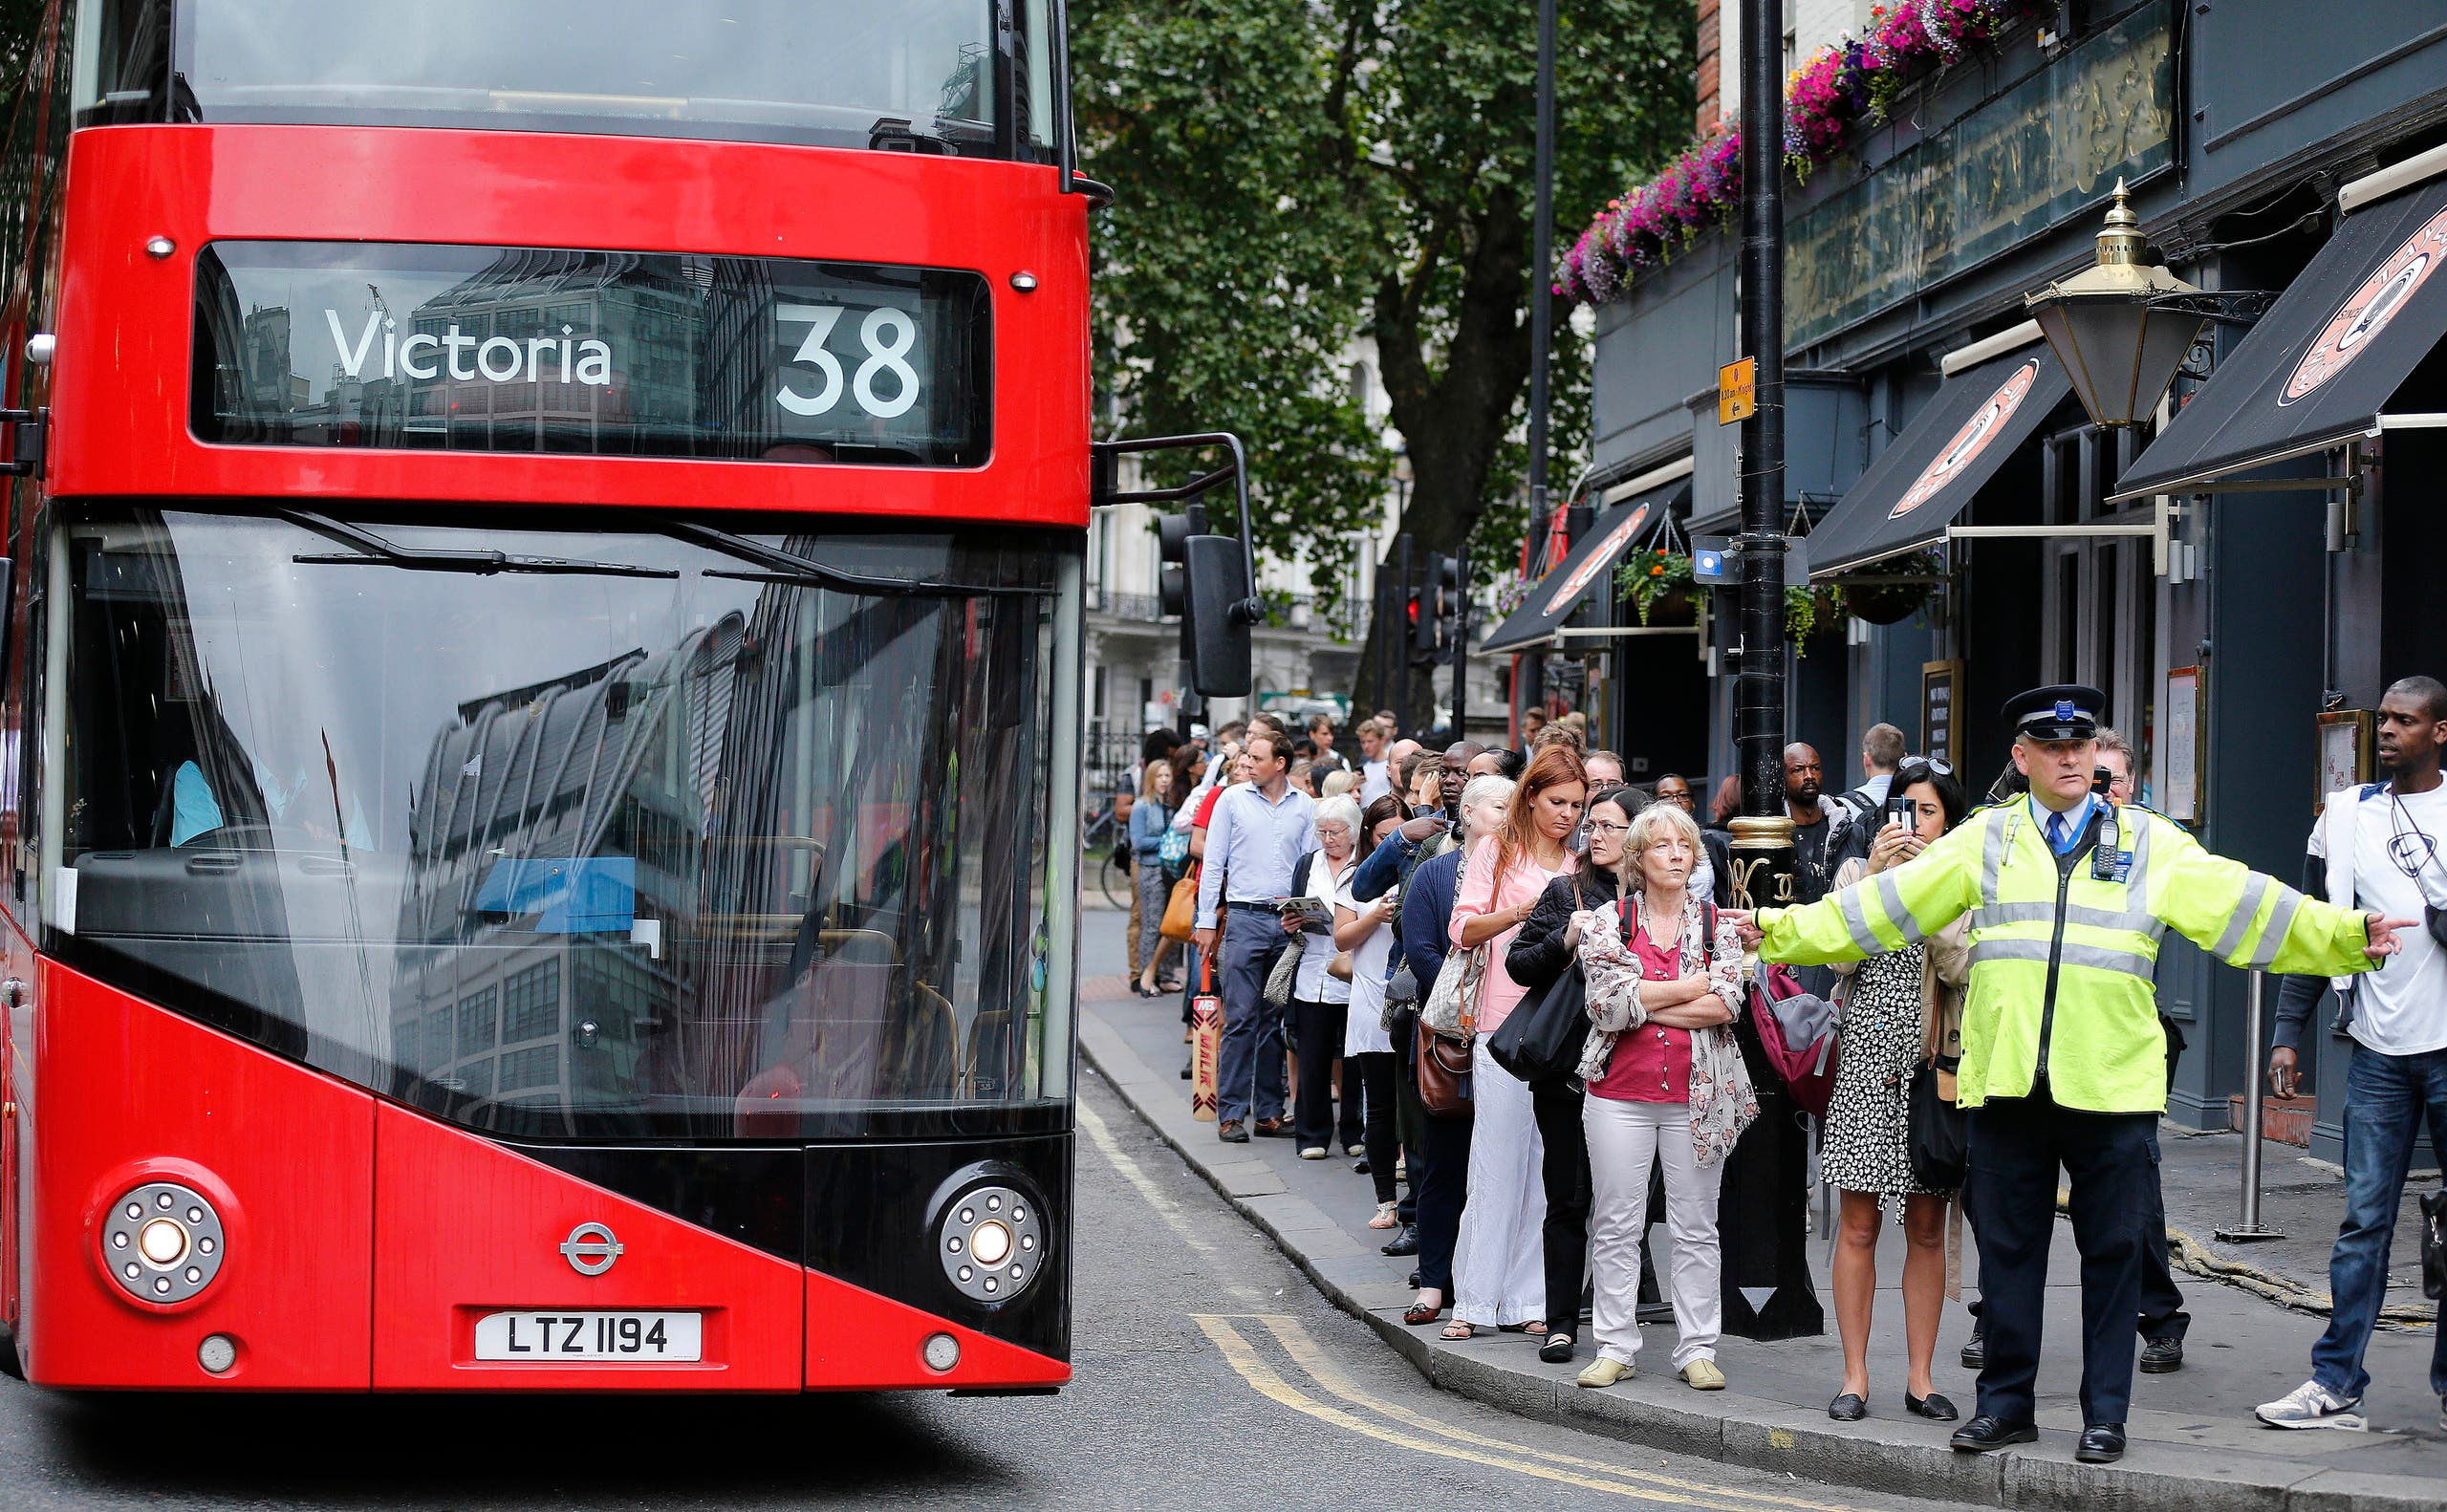 A police officer controls people queuing up for bus transport at Victoria Station in London, Thursday, Aug. 6, 2015. AP